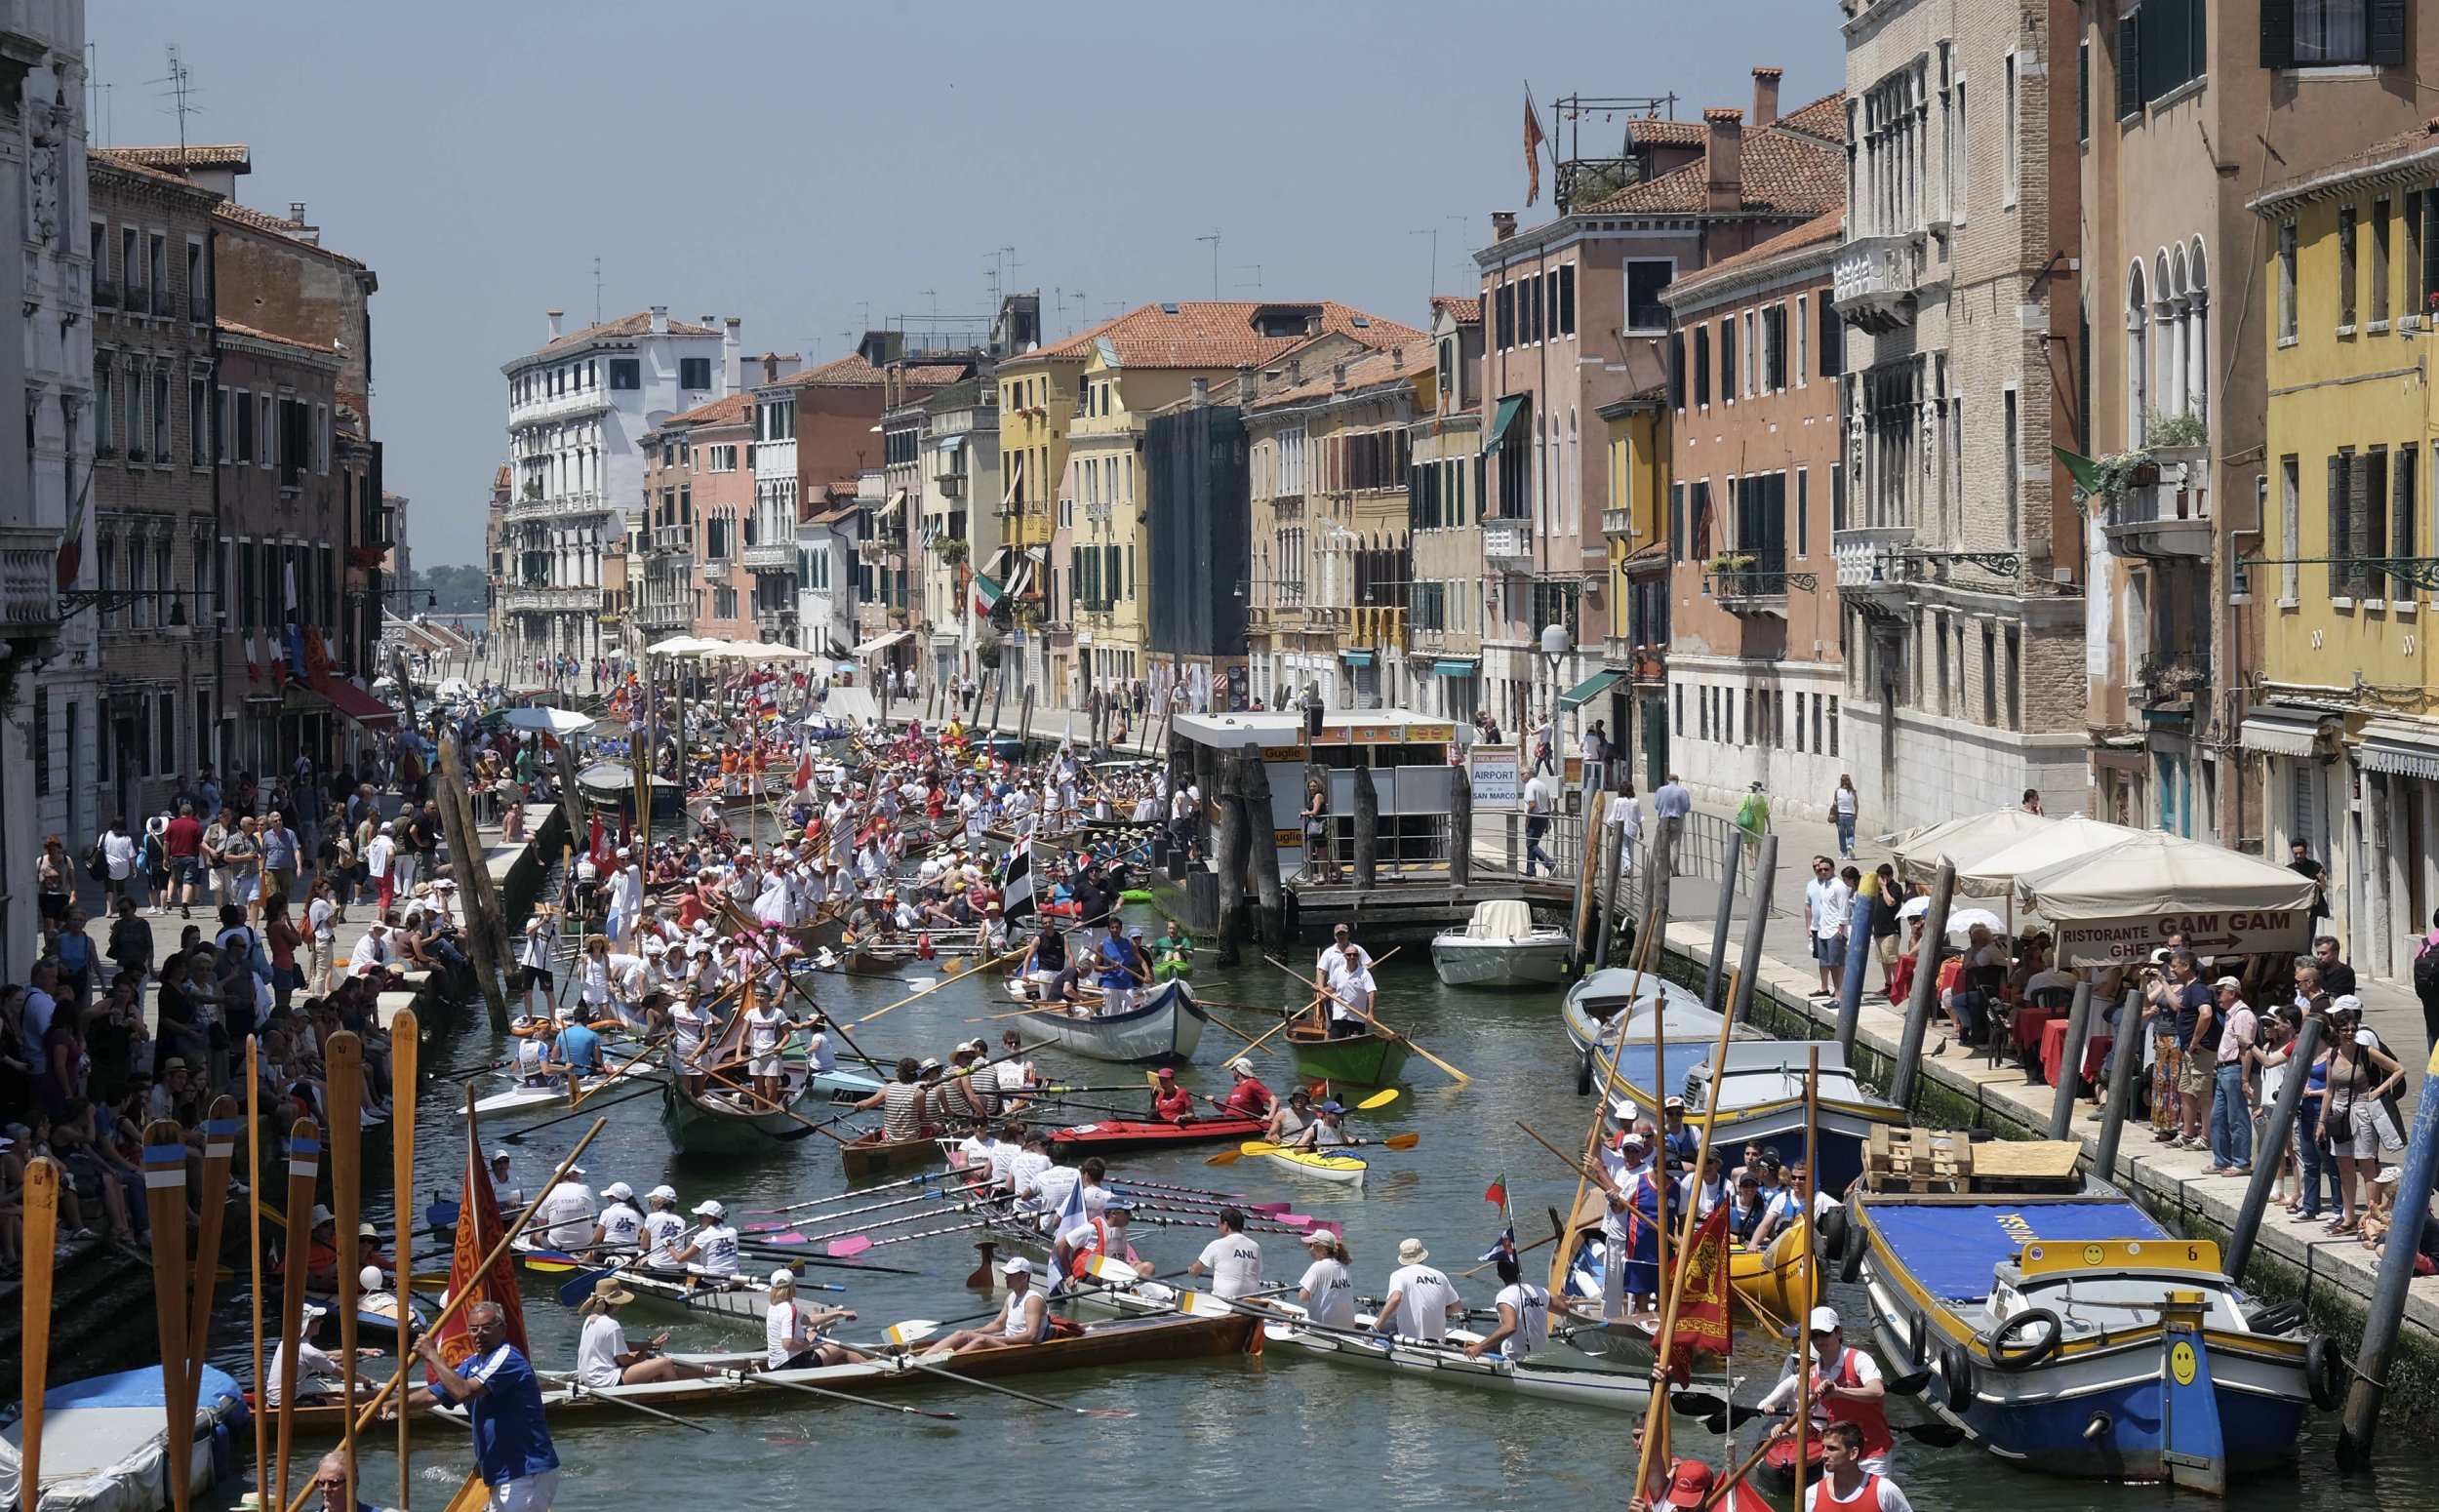 Venice Is Sinking Under A Tidal Wave Of Corruption